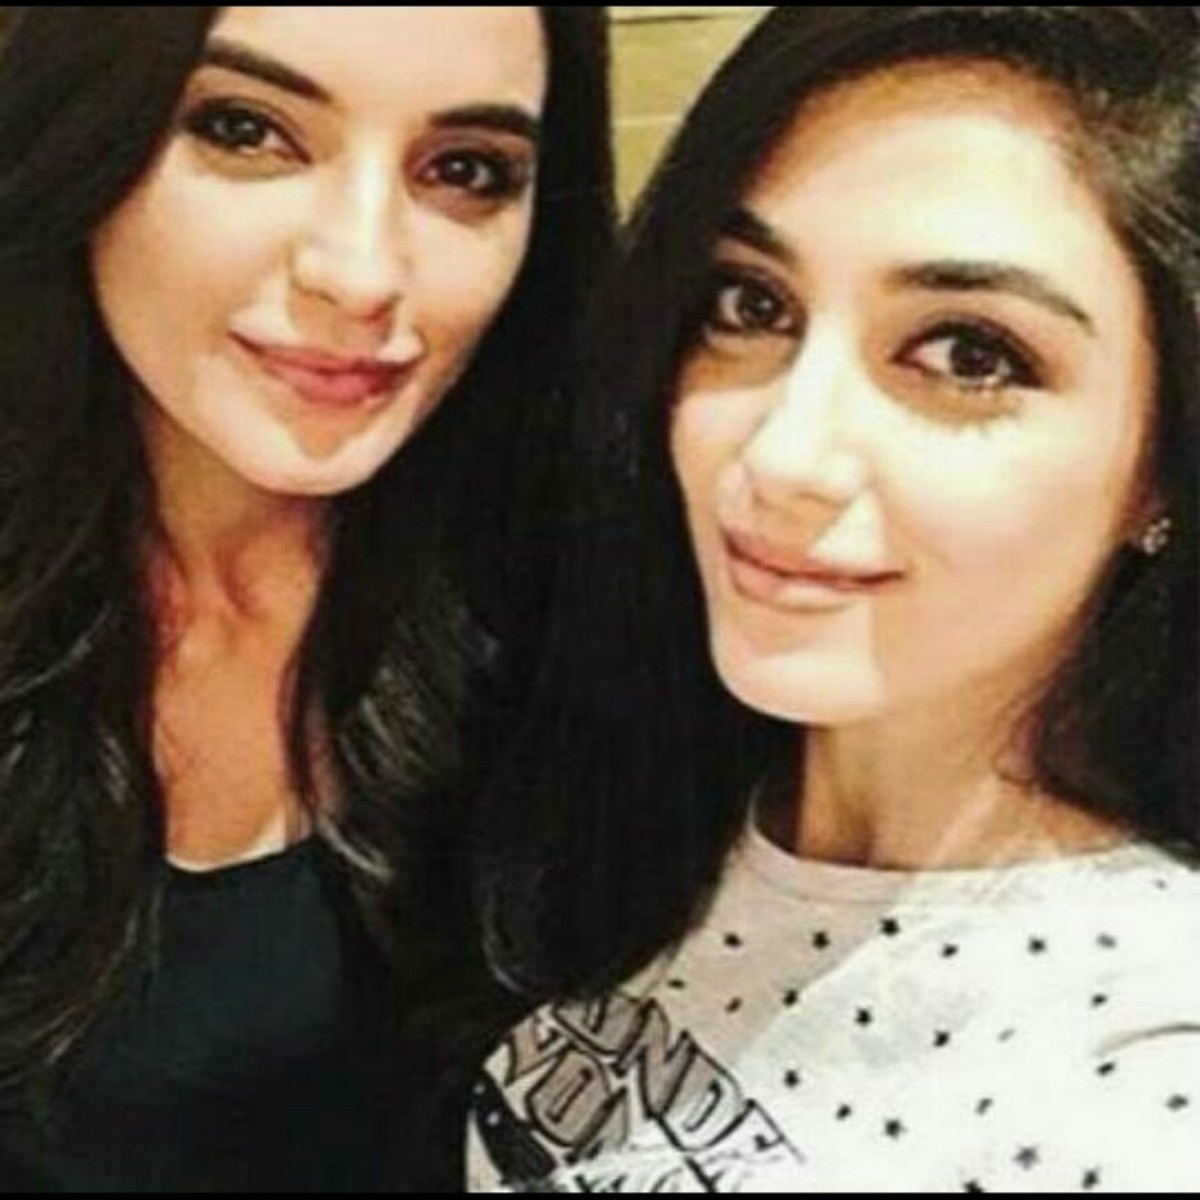 And of course she took a selfie with her maybe co-star Sadia Khan!